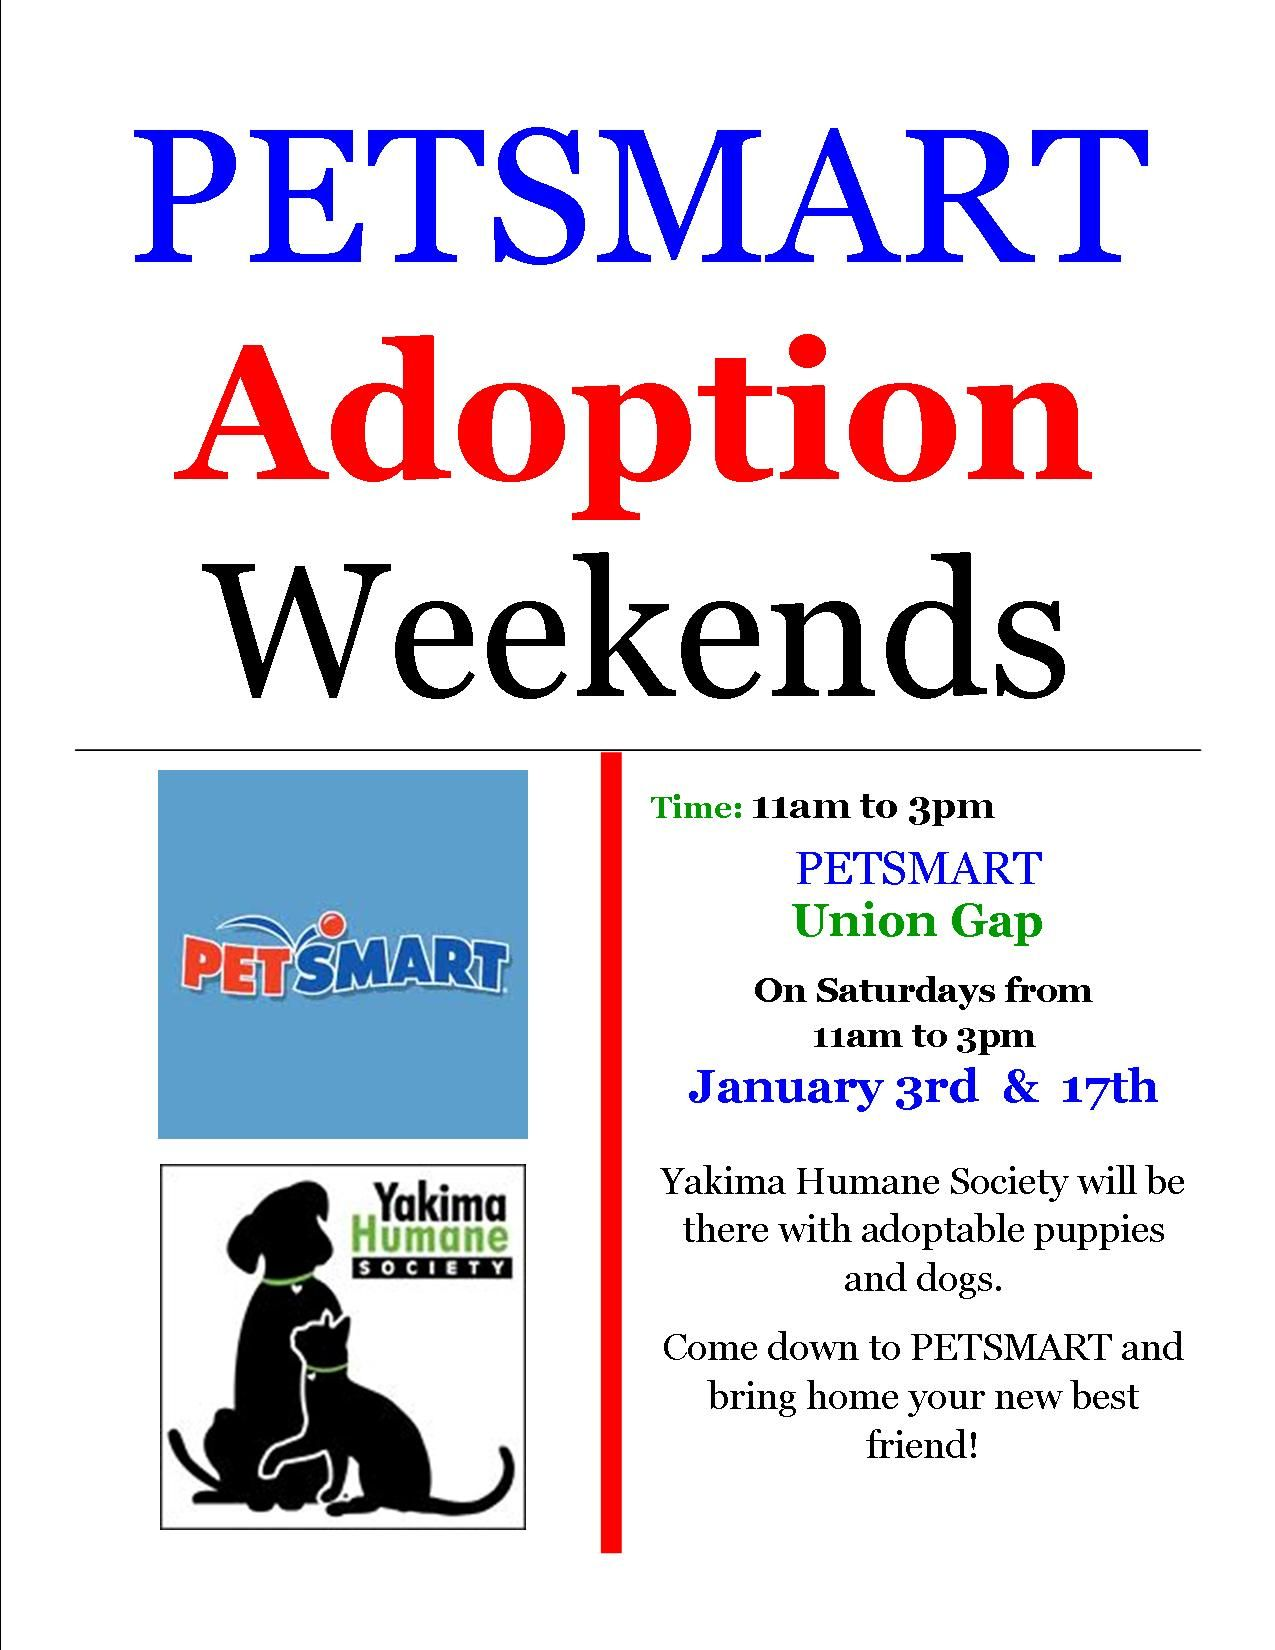 Petsmart Adoption Weekends With The Yakima Humane Society Come